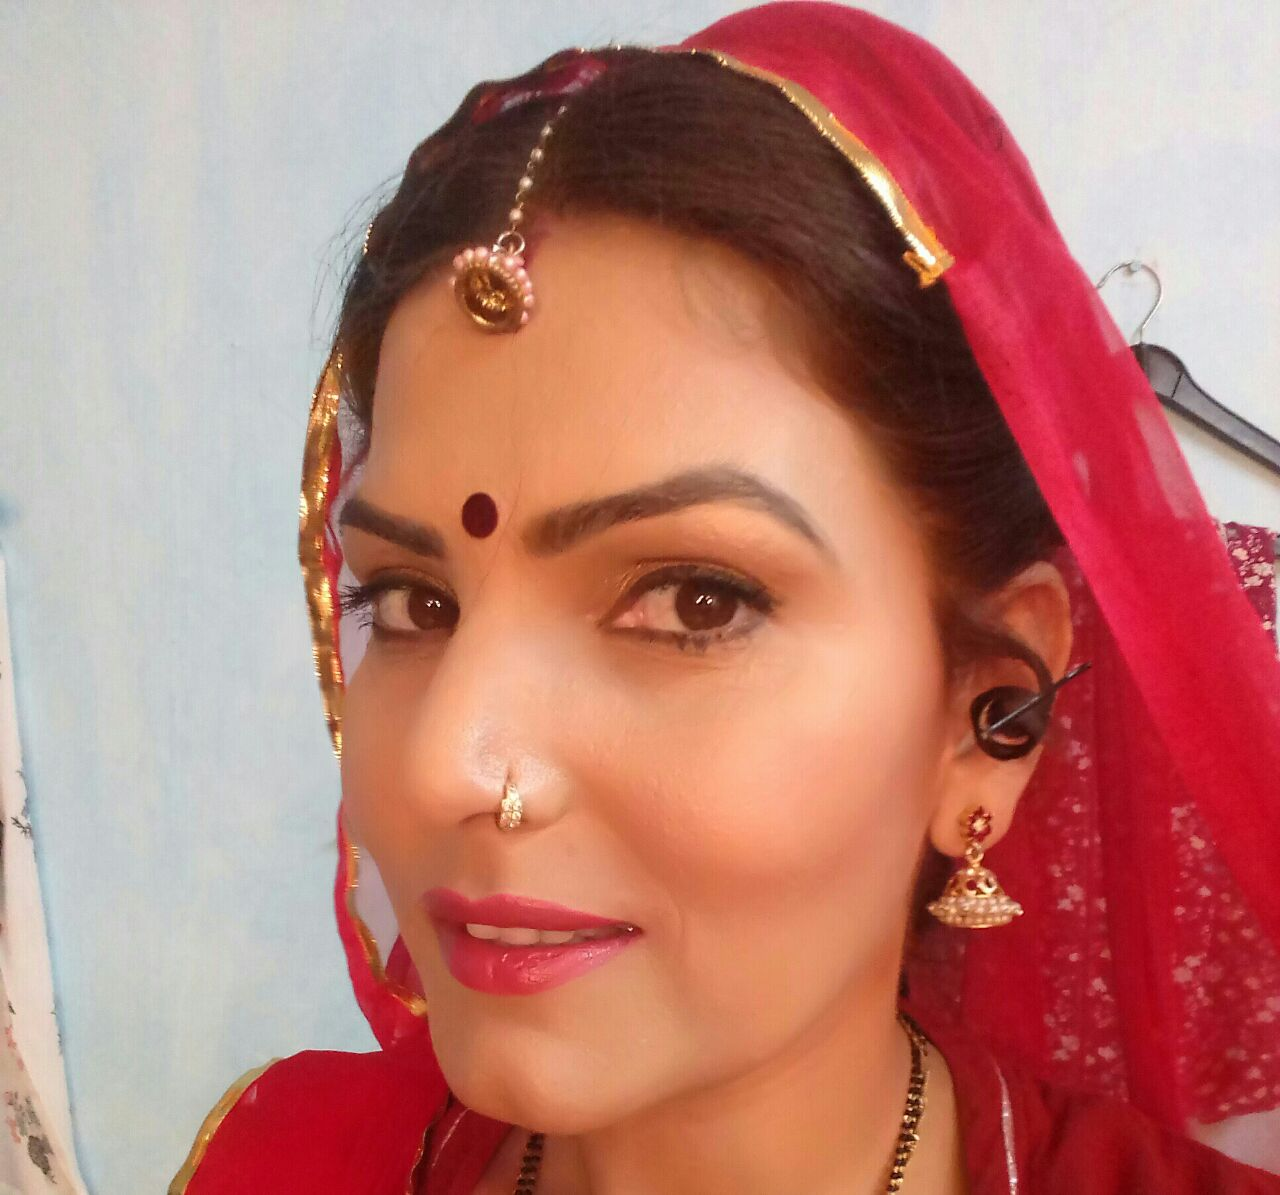 rajasthani movie actress mahiya dadheech